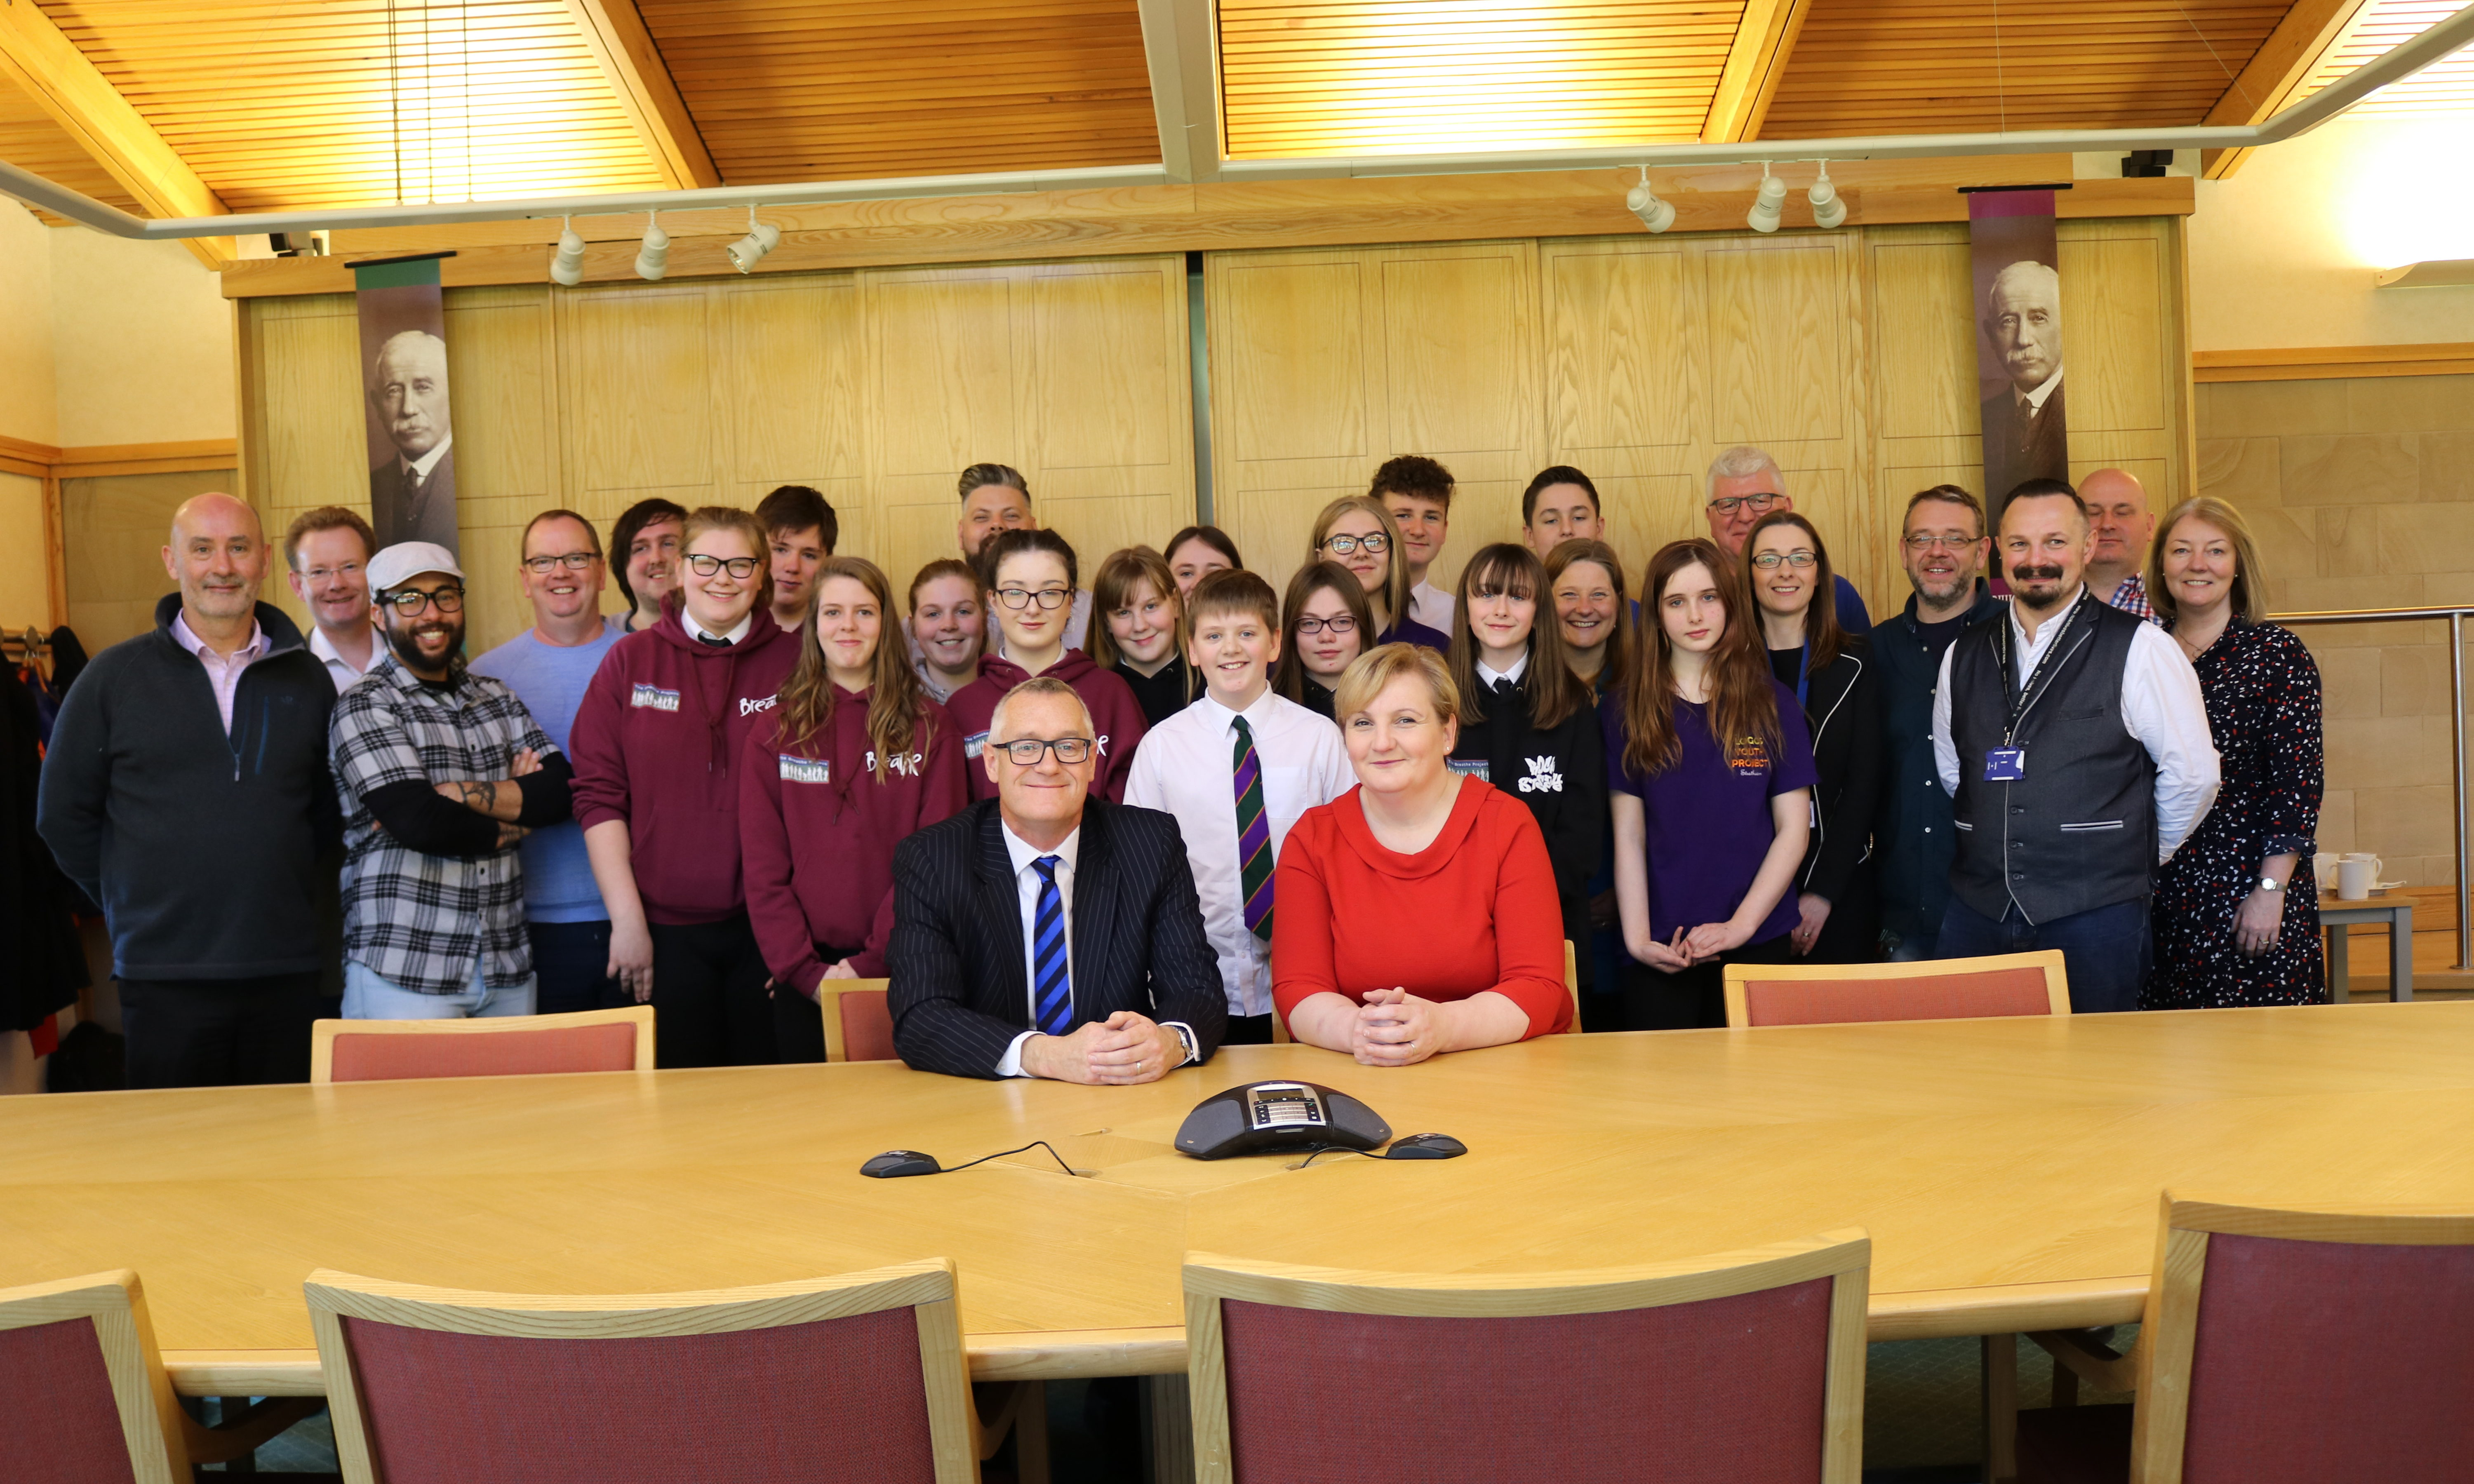 Councillor Caroline Shiers, Perth & Kinross Council's Lifelong Learning Convener with Bruce Renfrew, Trustee, Gannochy Trust youth workers and young people.